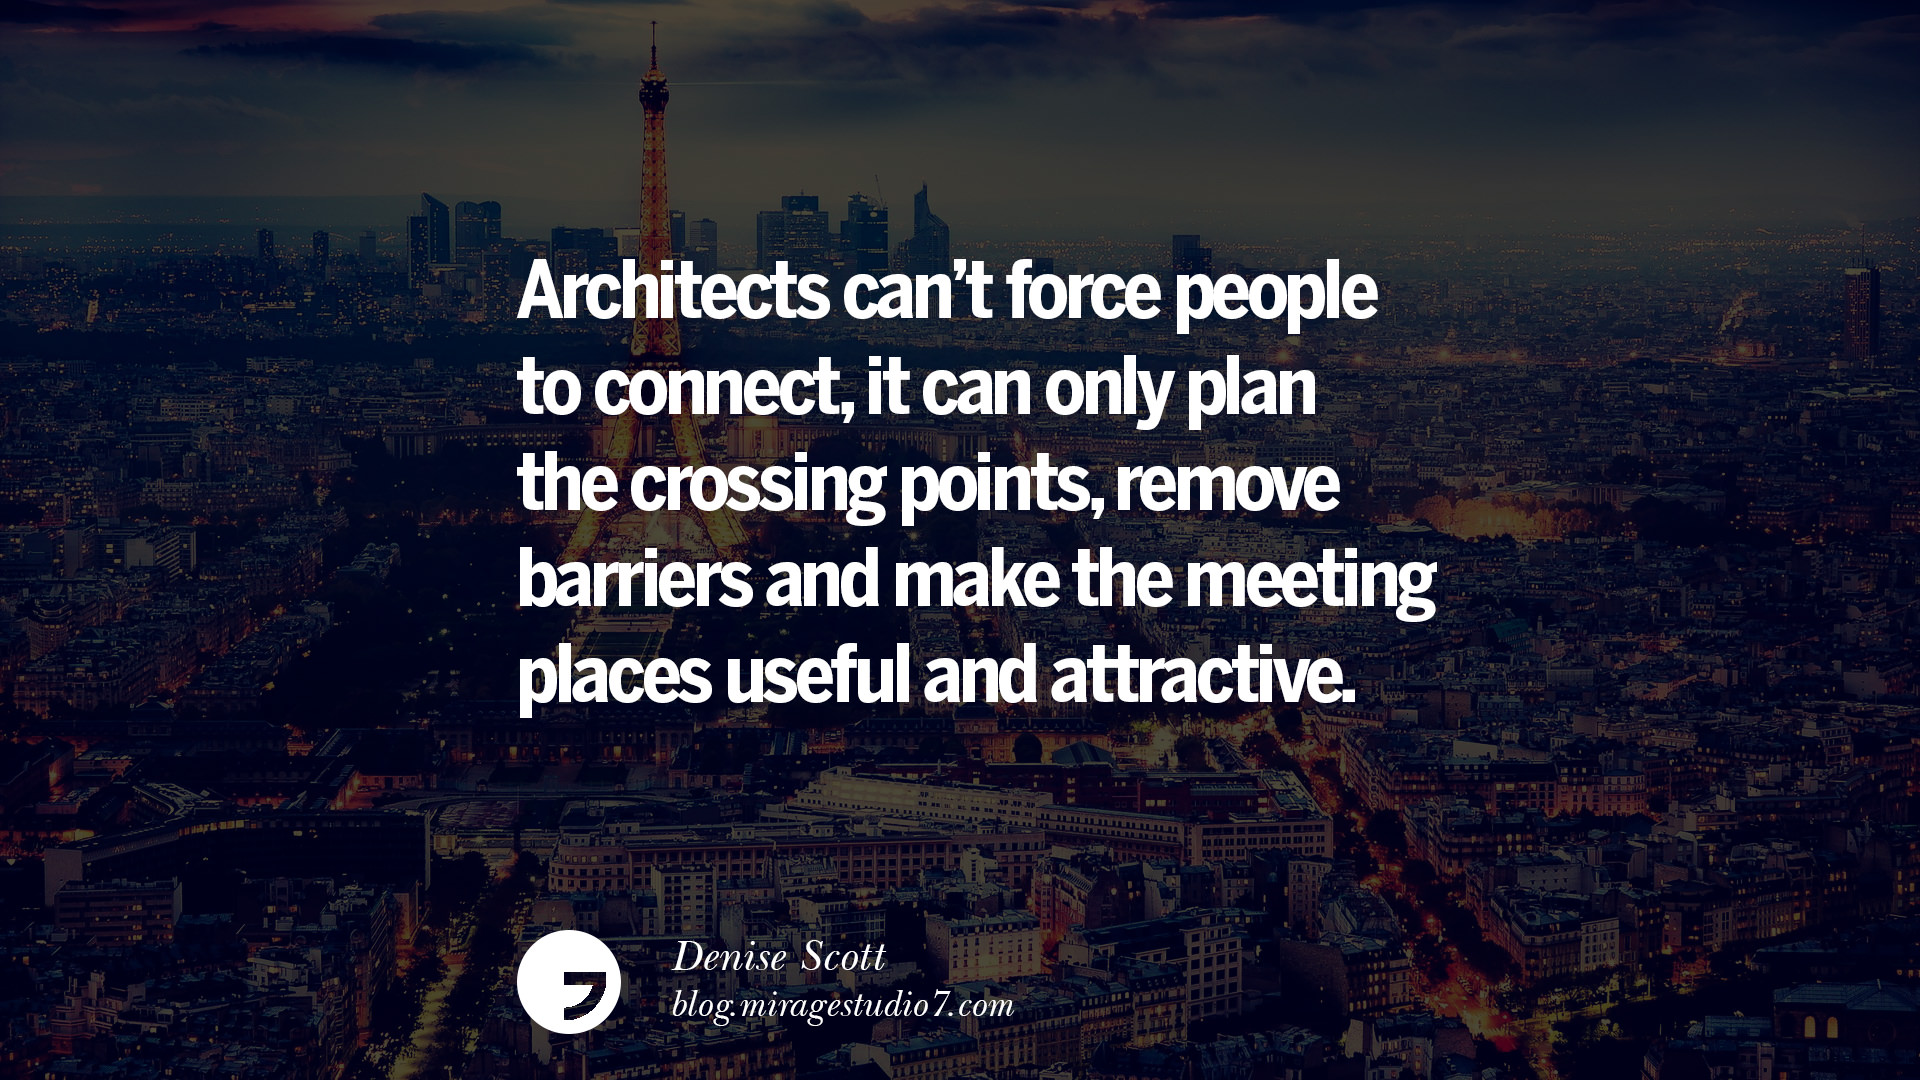 Landscape architect quotes quotesgram for Architecture quotes